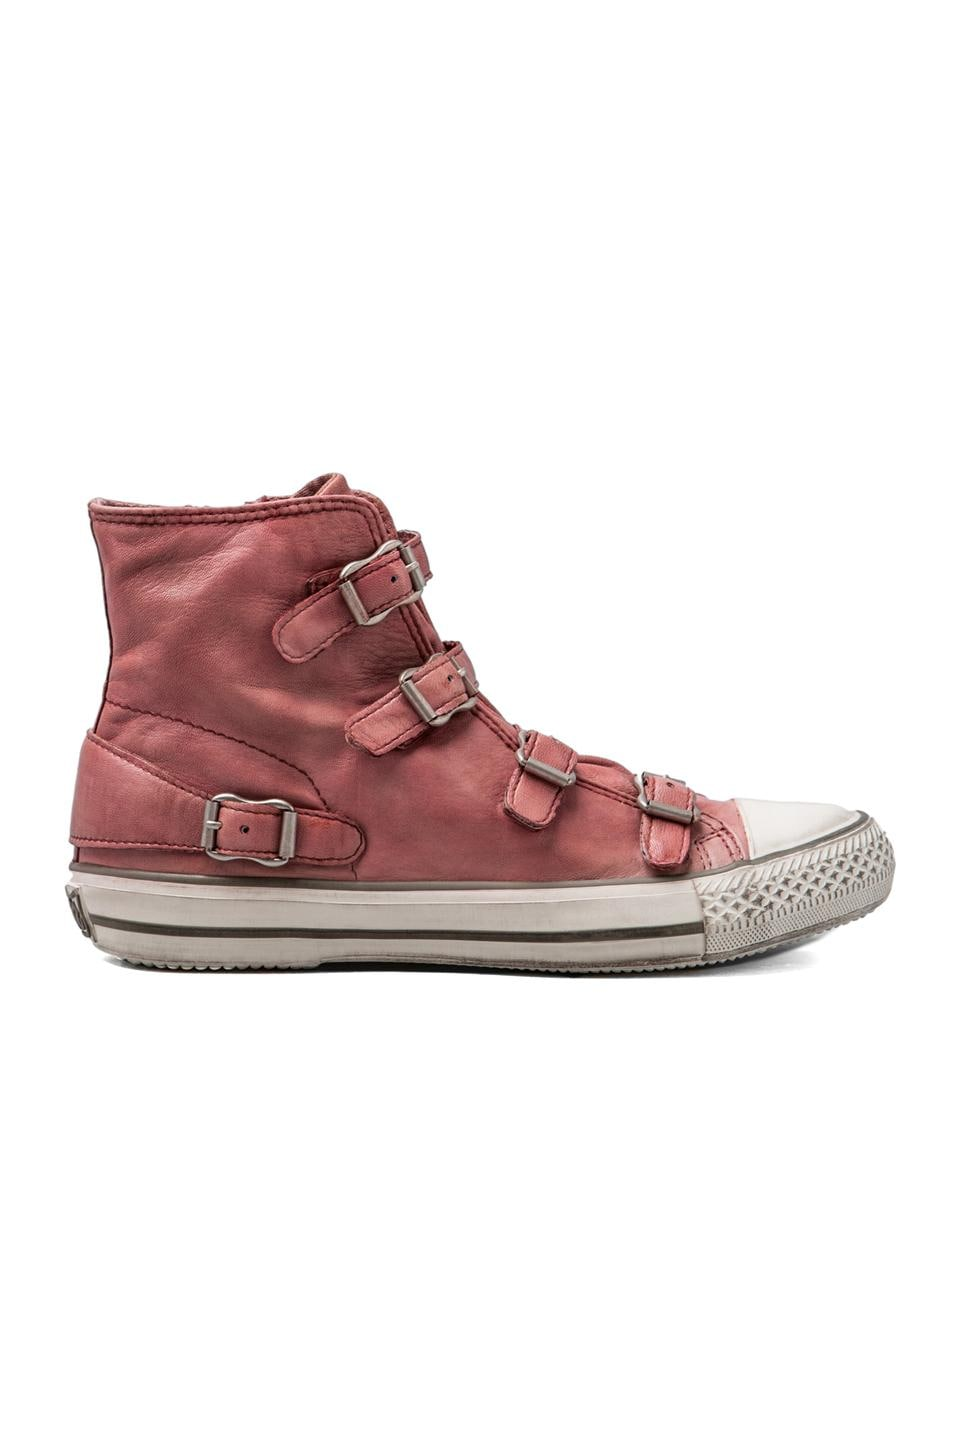 Ash Virgin Sneaker in Rose